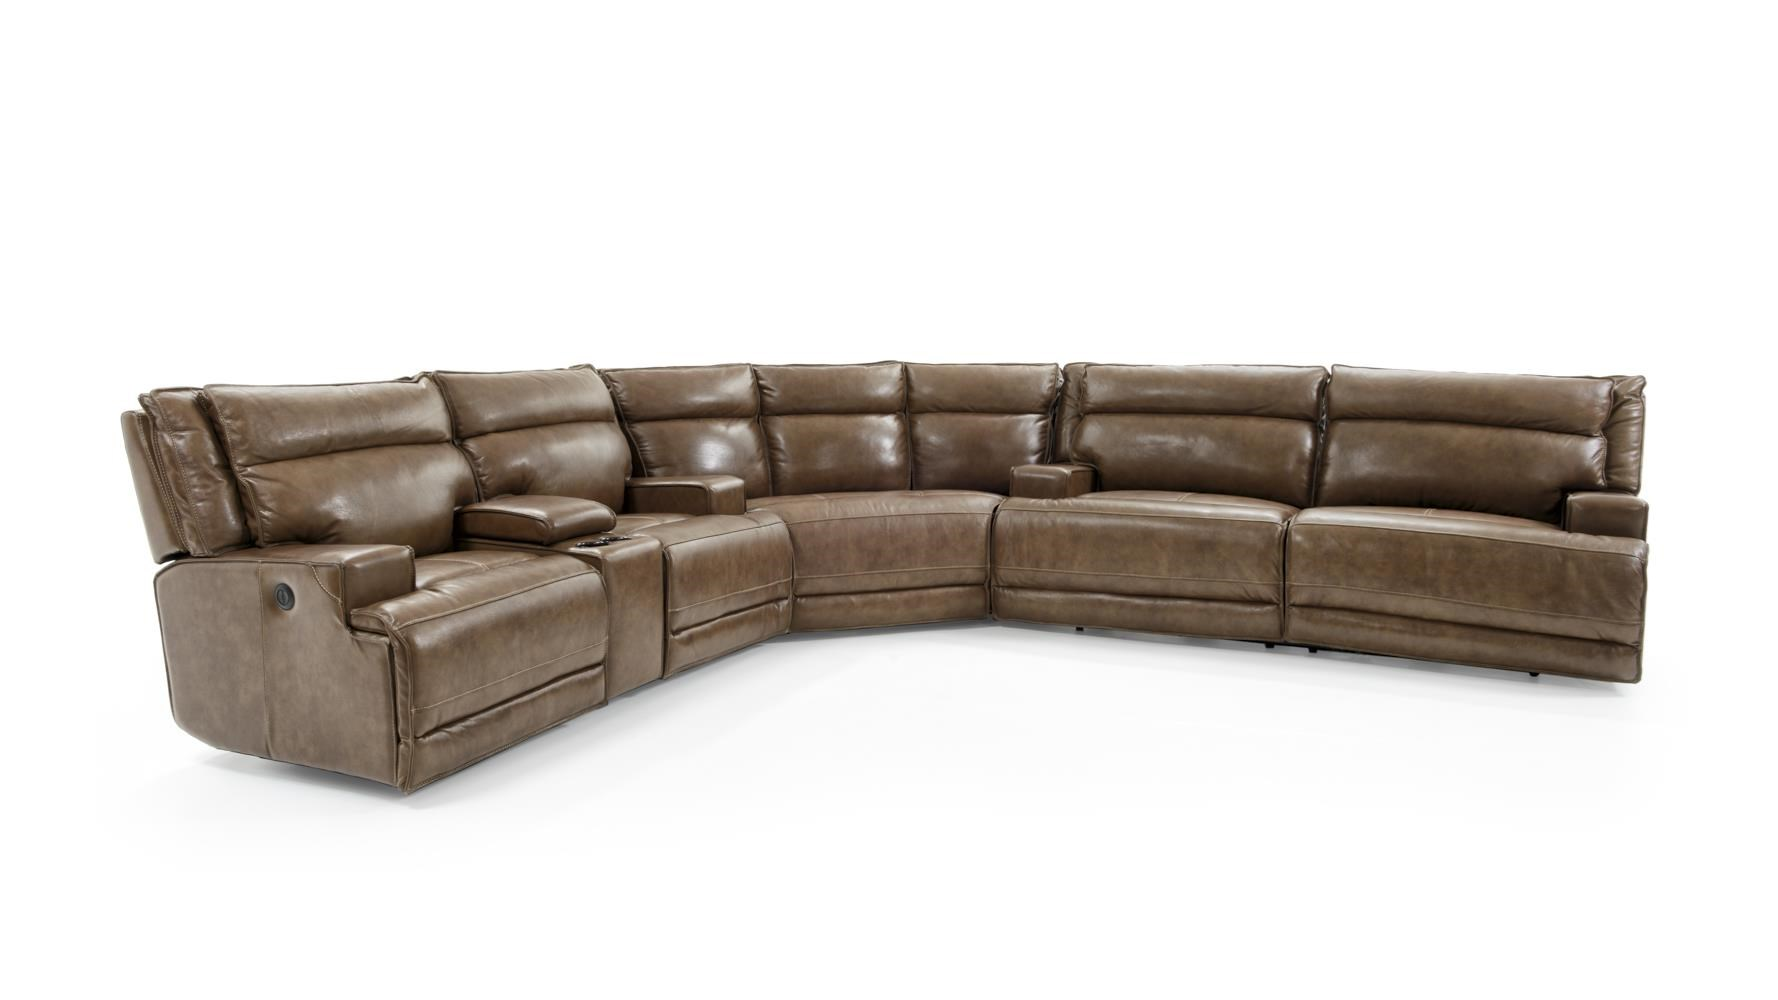 Futura Leather E1270 Three Piece Power Reclining Sectional Sofa with Cupholders and USB Ports ...